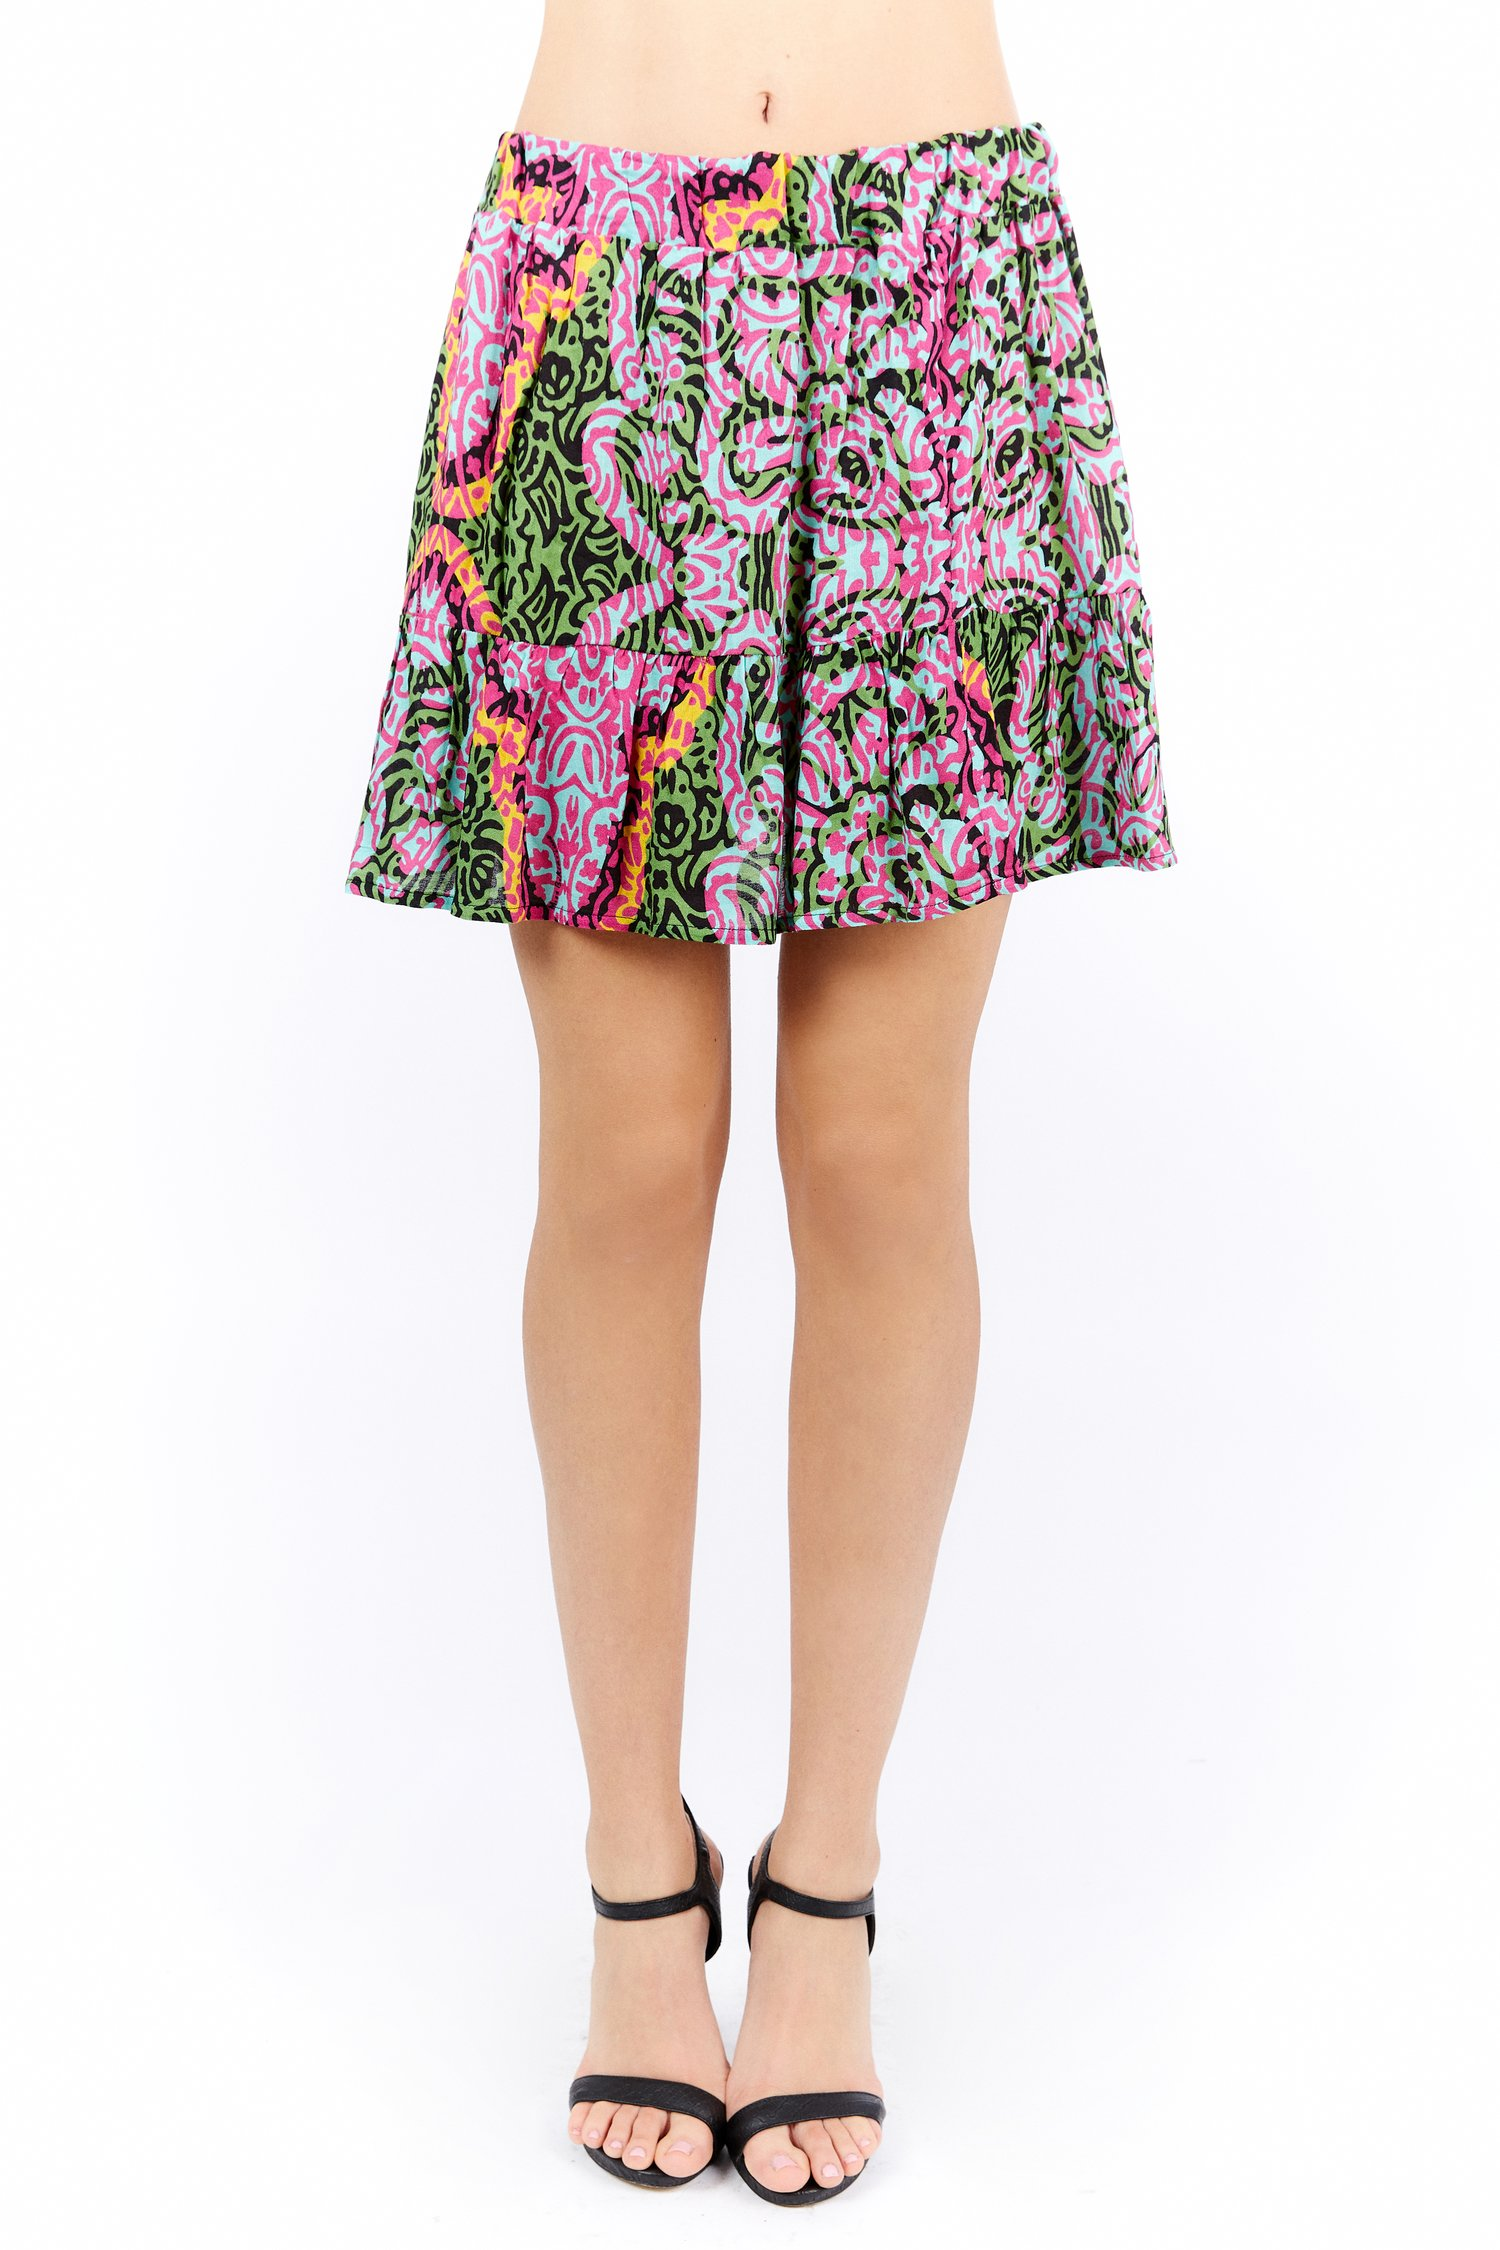 VISCOSE PRINTED SHORT SKIRT - India Pop Fuxia